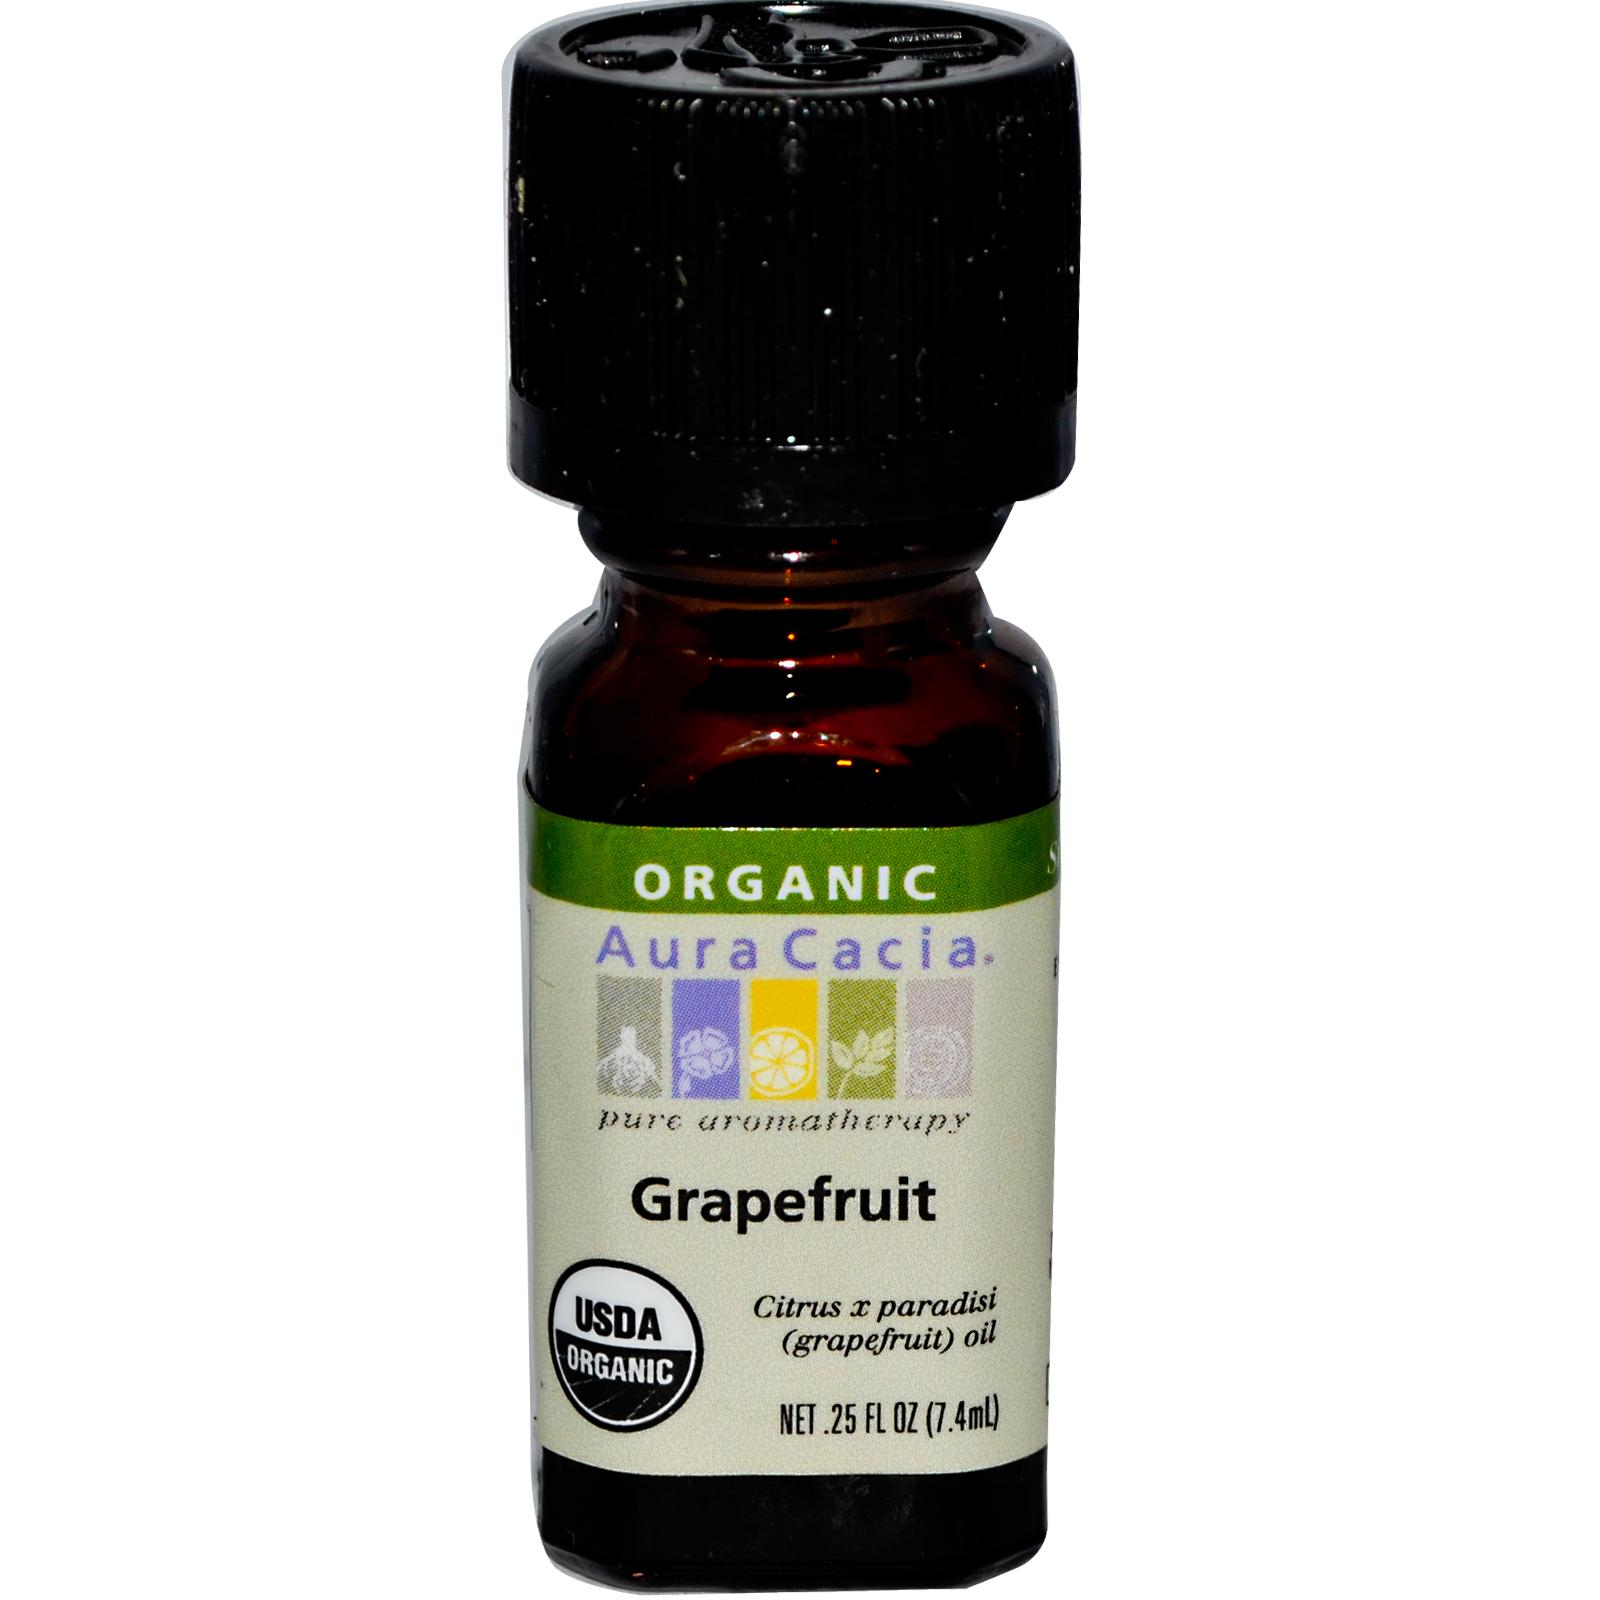 Organic Essential Oil - Grapefruit - 0.25 fl. oz. aromatherapy, essential oil, organic, all natural, aura cacia, certified, doTerra,  therapeutic grade, pure, grapefruit,